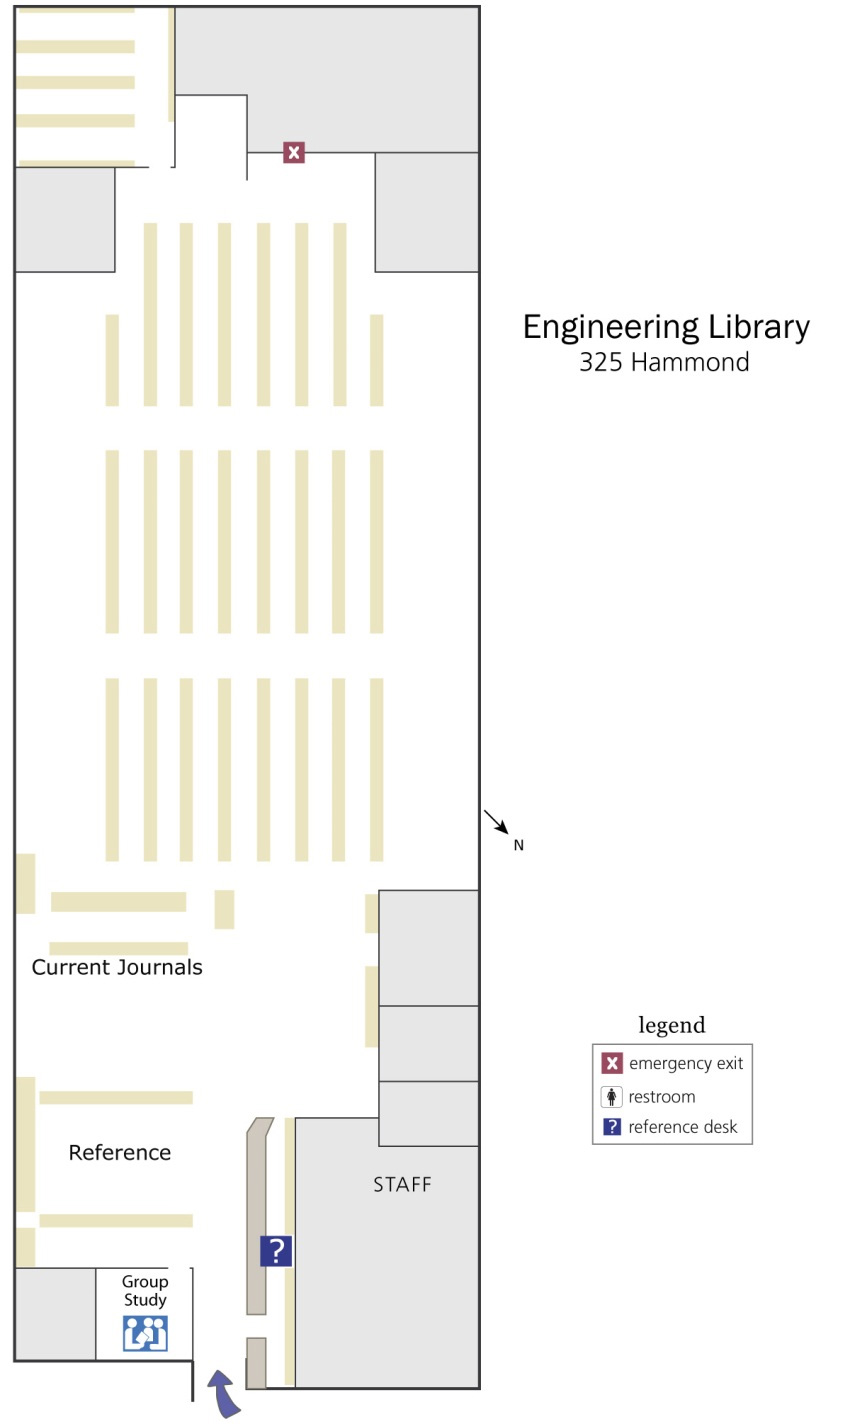 Engineering Library floorplan